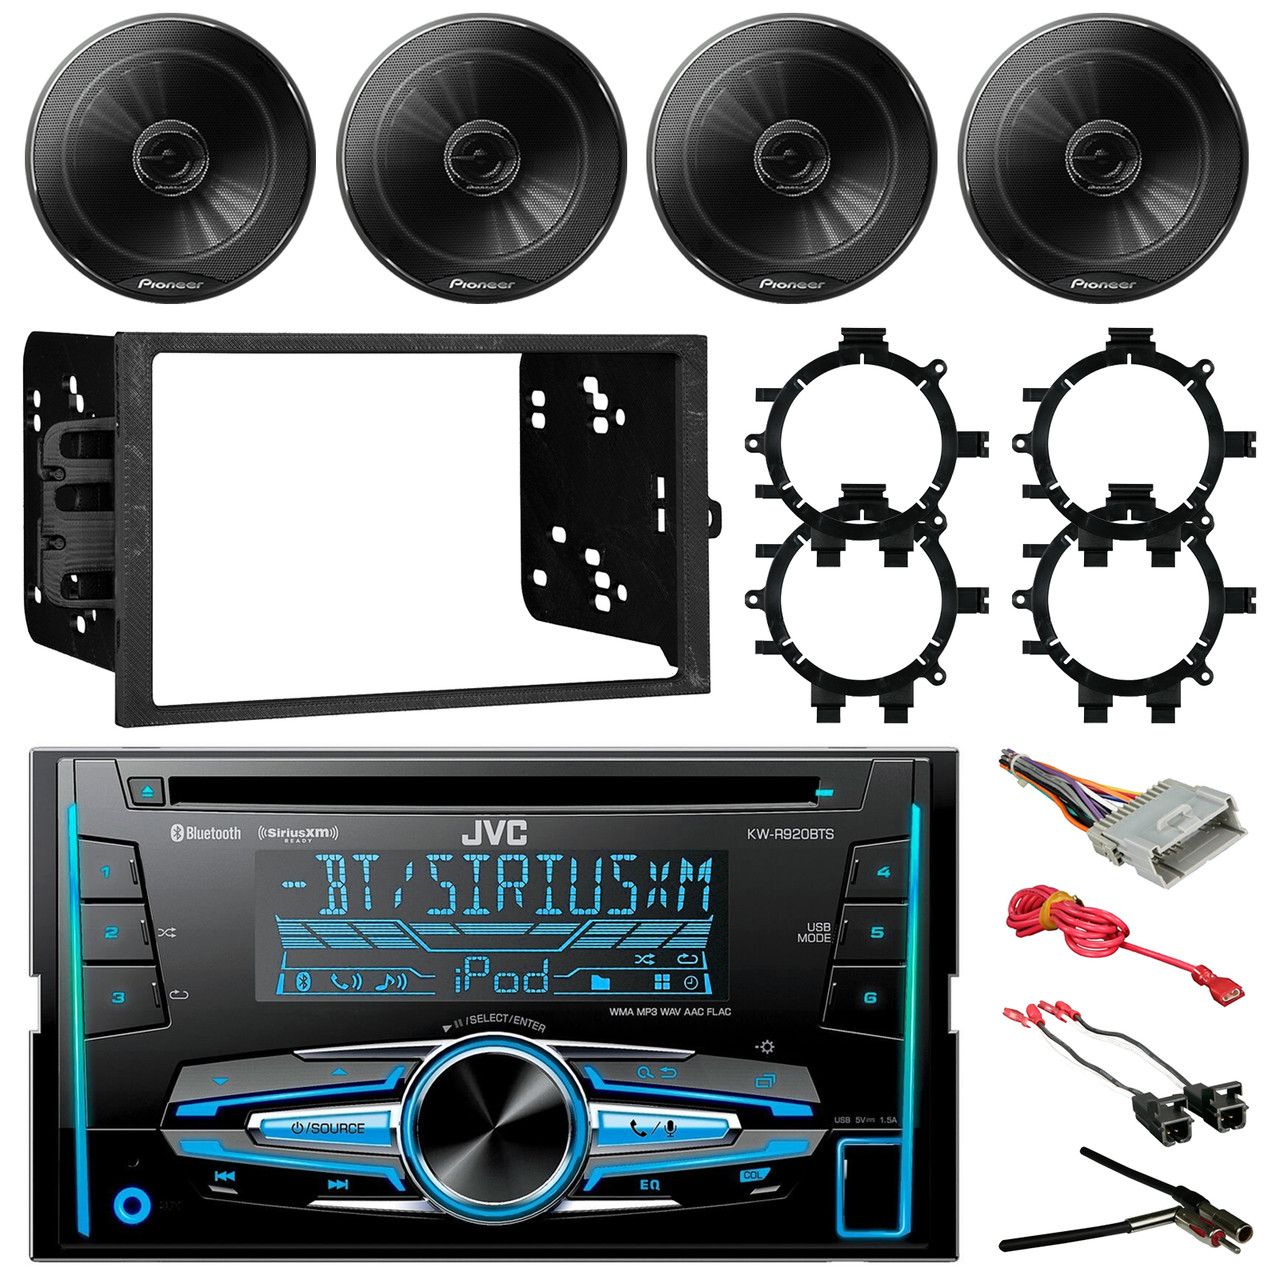 cd player computer, cd player antenna, cd player speaker, cd player battery, cd player power supply, cd player radio, cd player motor, cd player remote control, on jvc cd player wiring harness